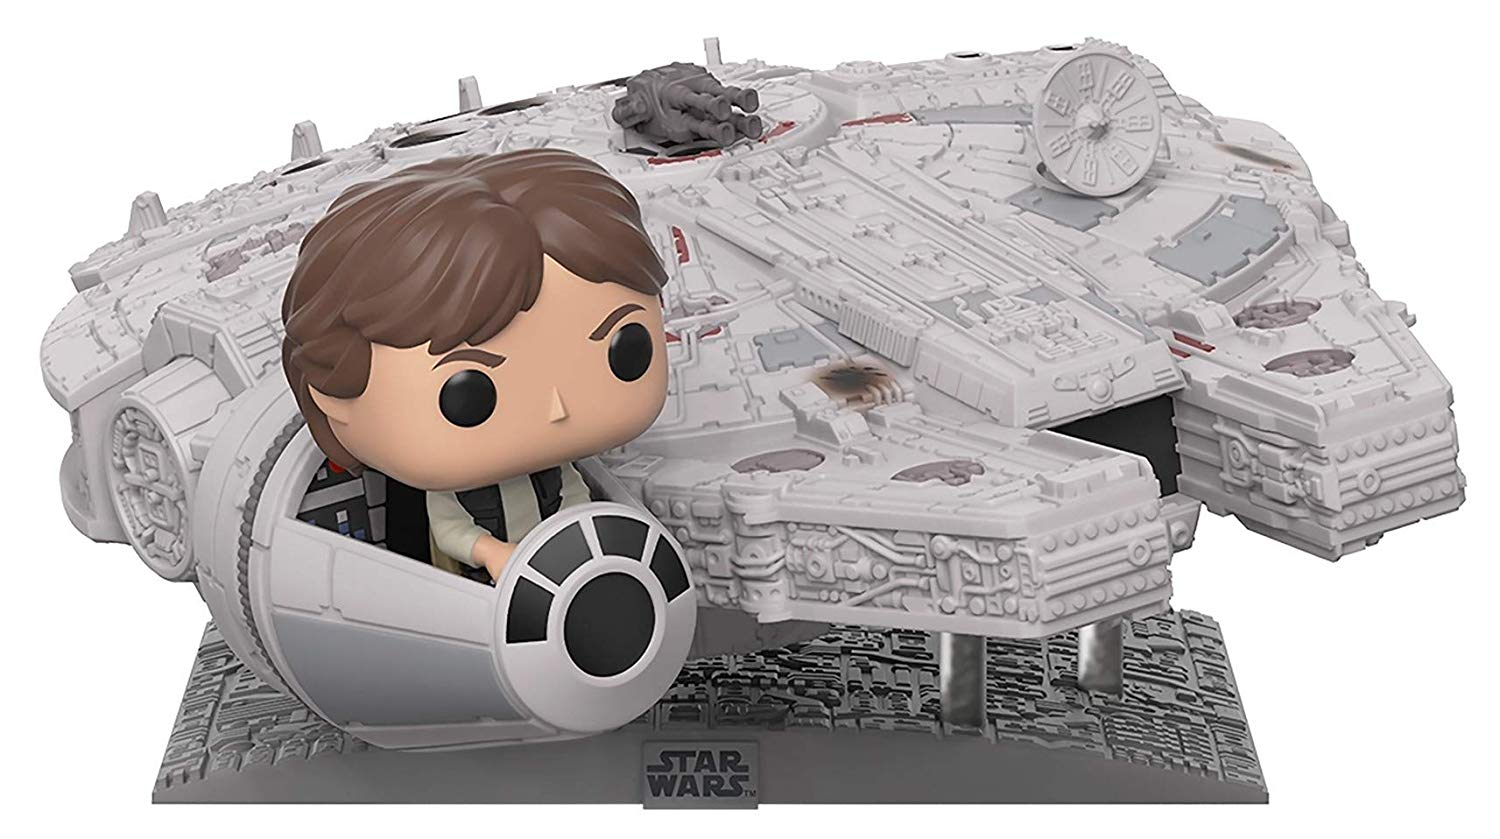 Amazon Prime Day Star Wars Exclusive Features Funko Pop Deluxe Millennium Falcon With Han Solo